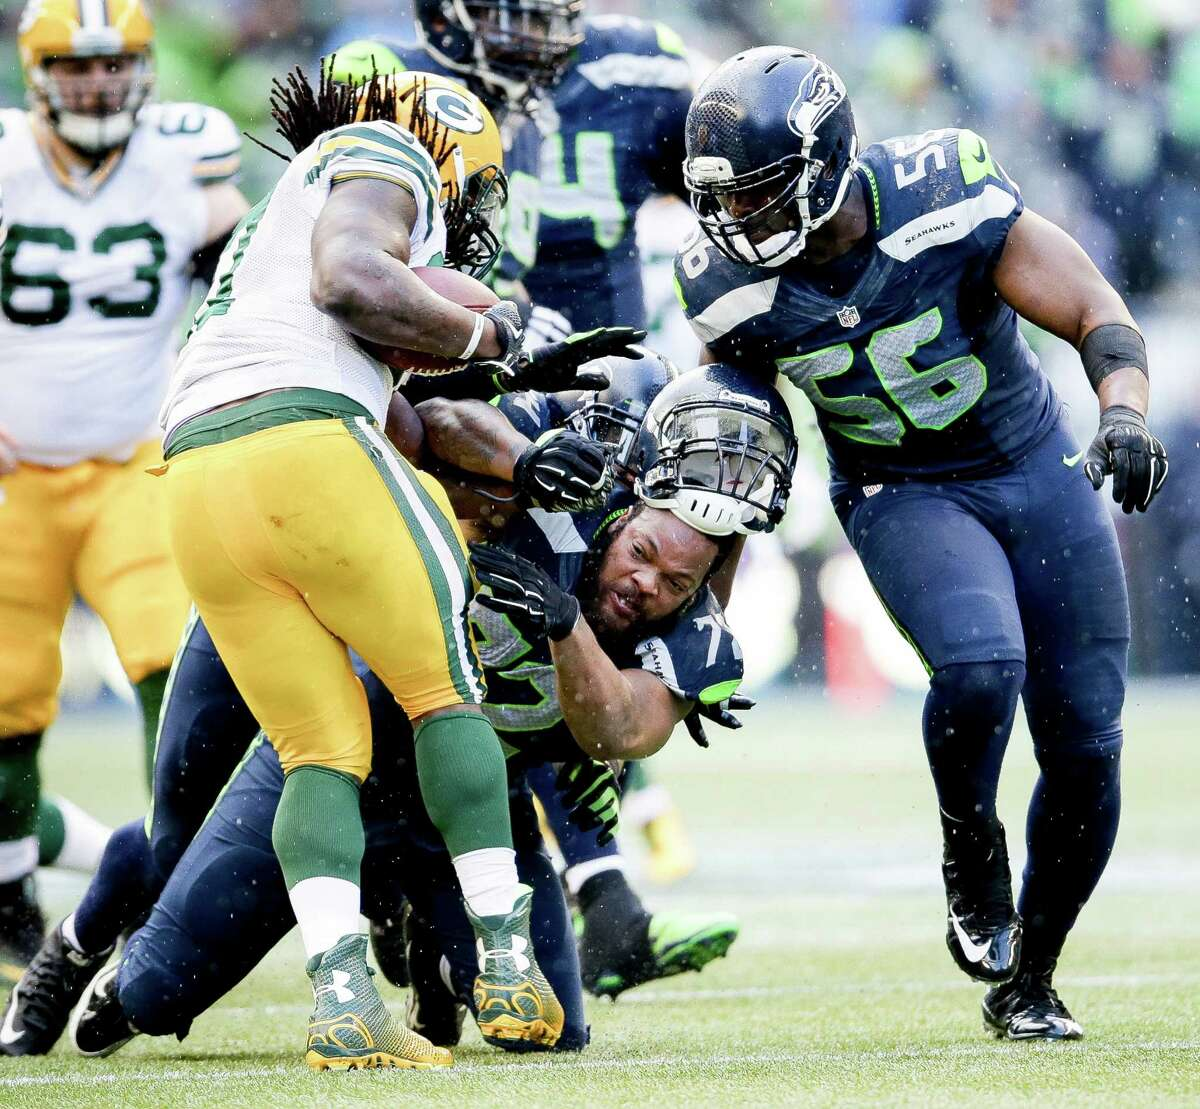 Seahawks defensive end Michael Bennett tackles Green Bay running back Eddie Lacy for a 2-yard loss in the fourth quarter the NFC championship game on Jan. 18, 2015, at CenturyLink Field in Seattle